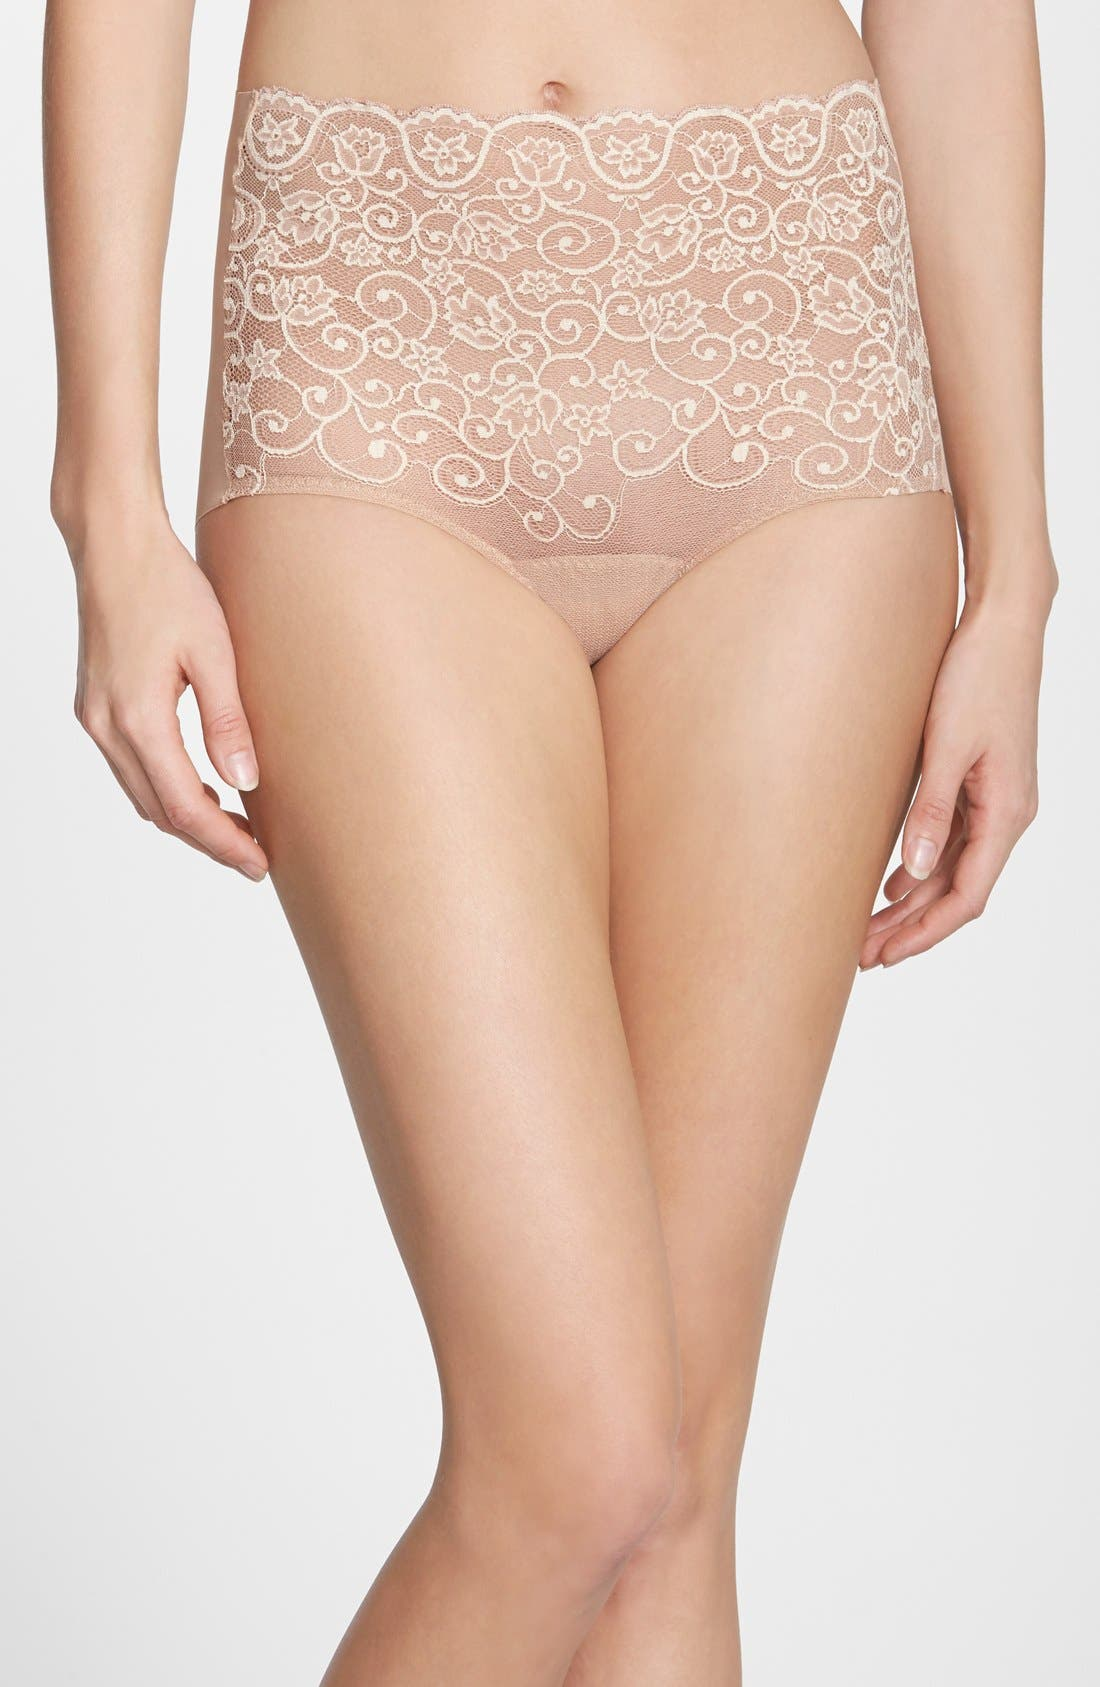 'Double Take' Lace Front High Rise Panties,                         Main,                         color, Ivory/ Beige